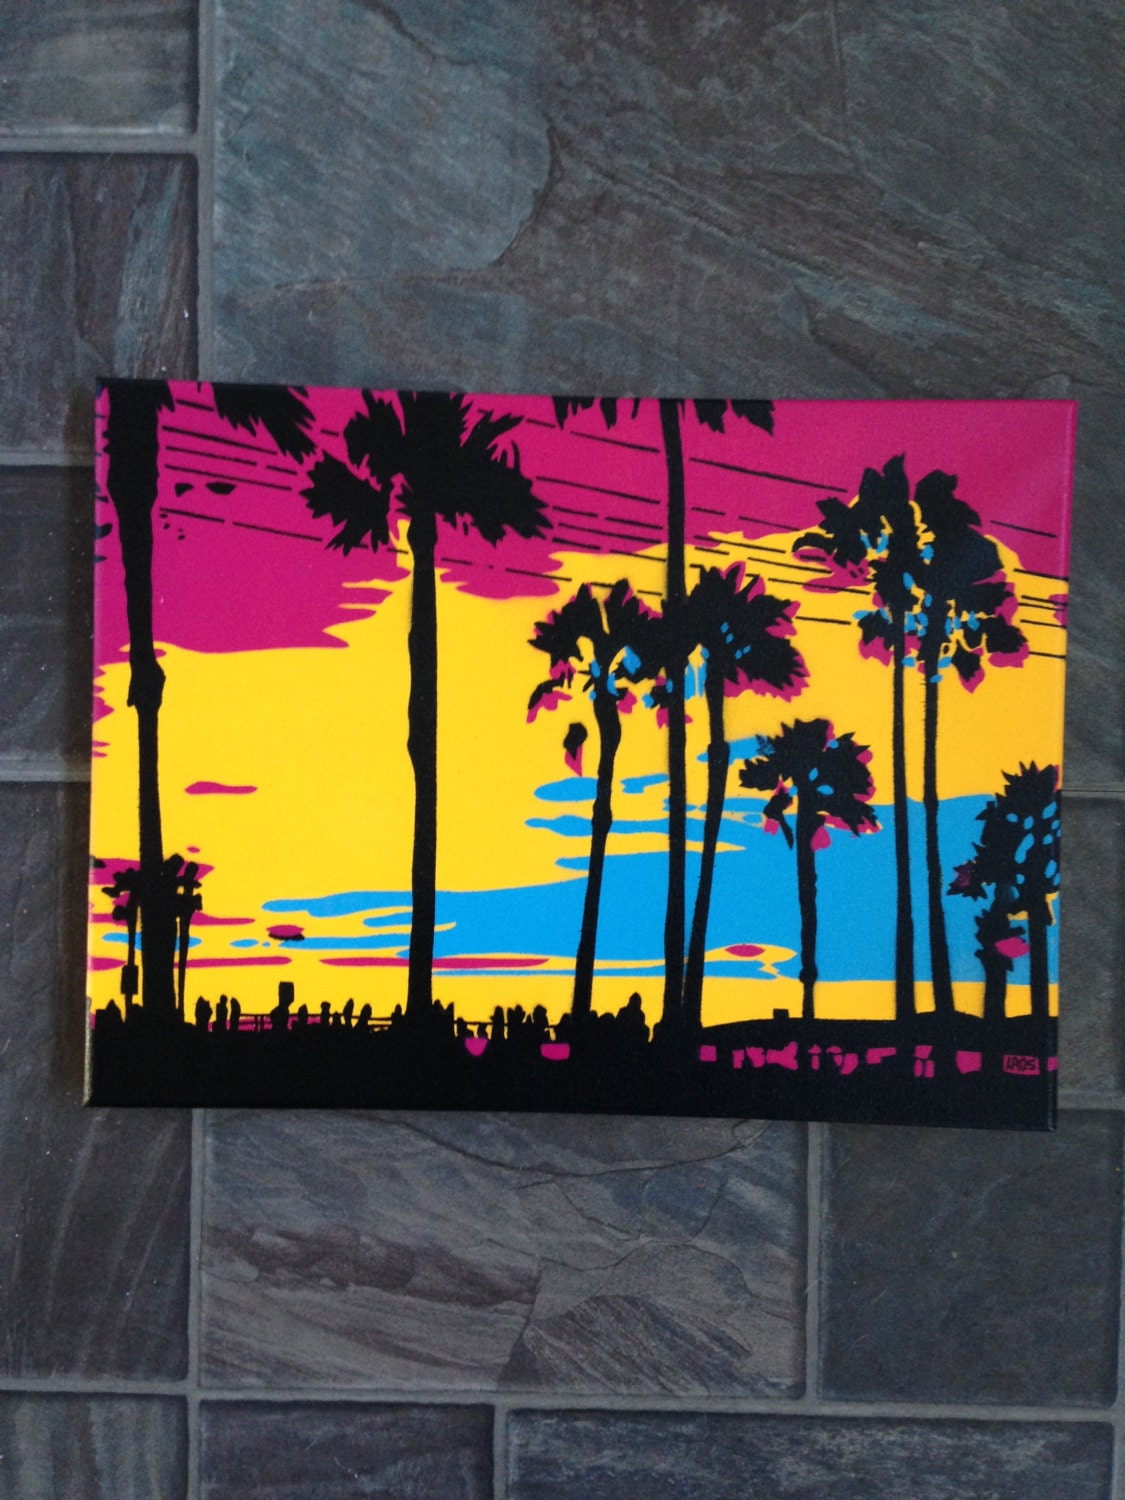 Sunset in los angeles stencil art painting canvas spray paint for Printable stencils for canvas painting